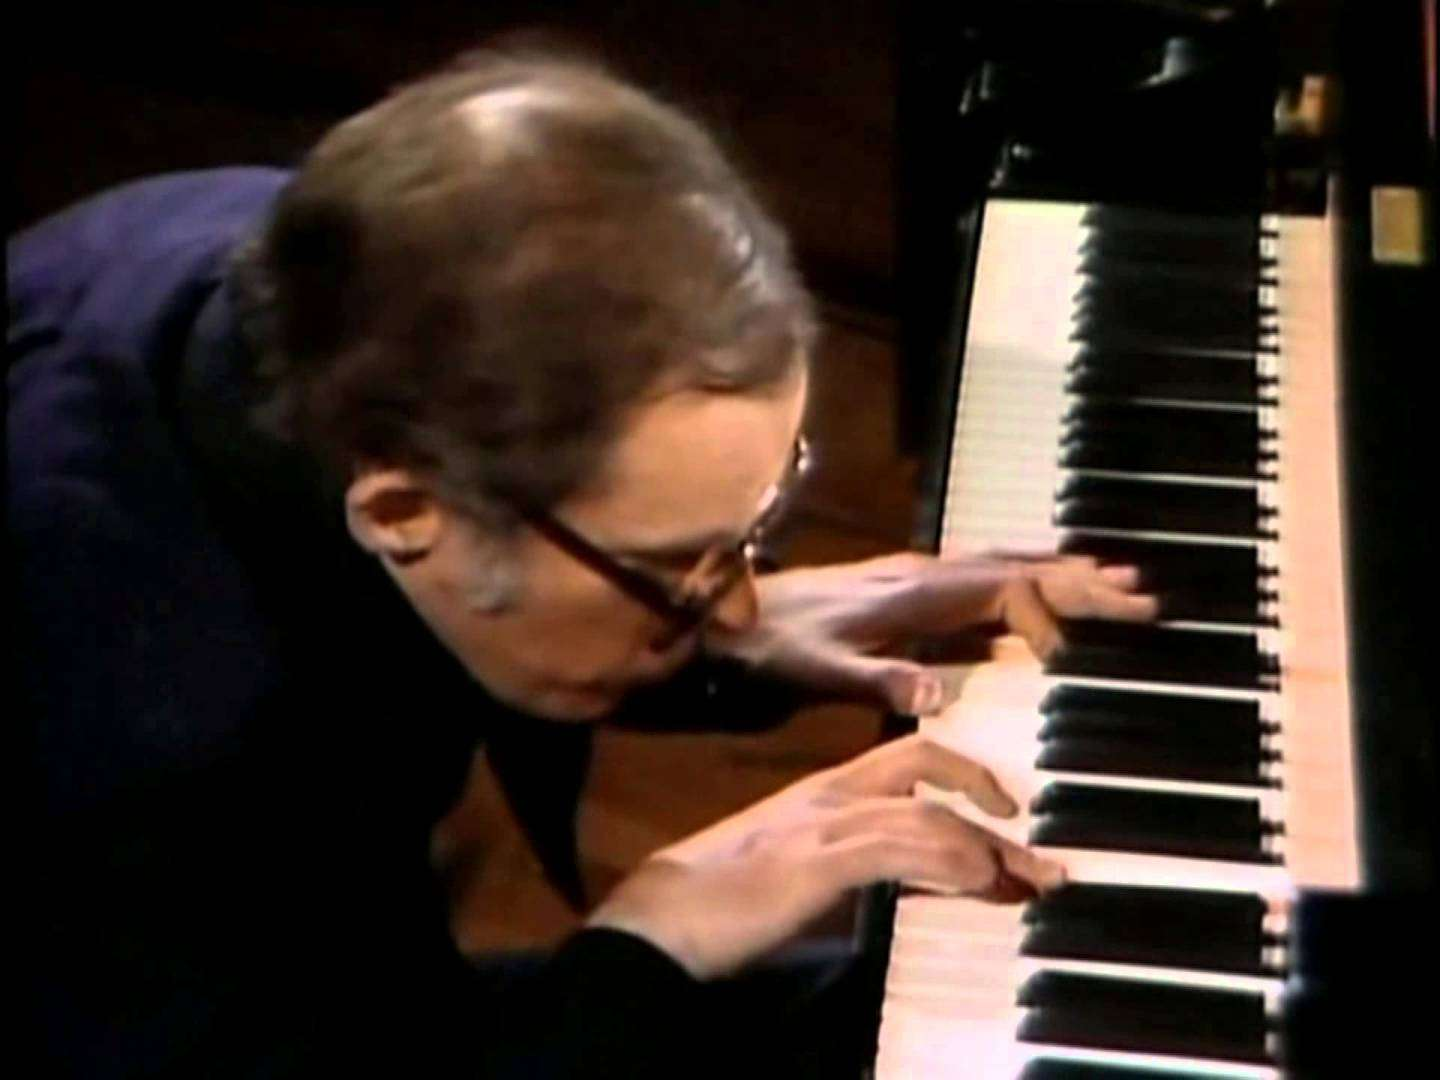 [HD] Bach's Goldberg Variations [Glenn Gould, 1981 record] (BWV 988) - YouTube